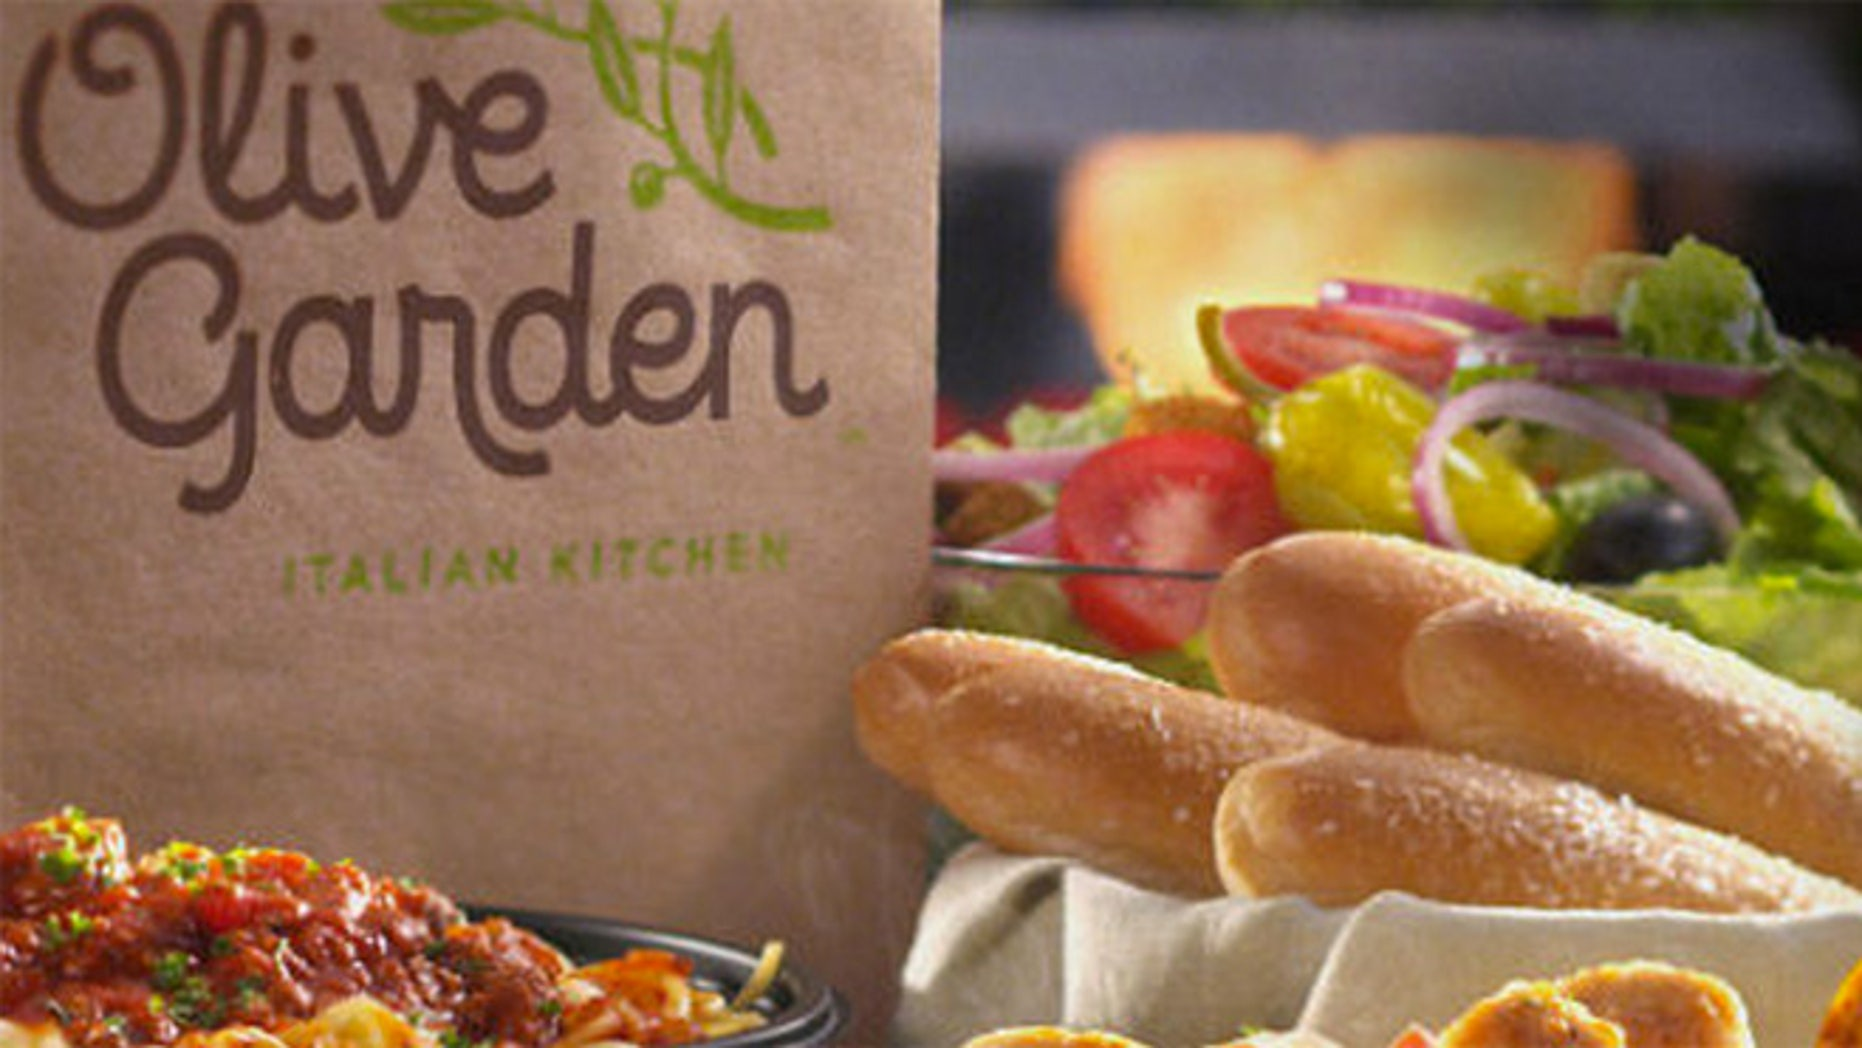 The restaurant chain known for its unlimited breadsticks says it plans to use them for chicken parmigiana and meatball sandwiches starting June 1.